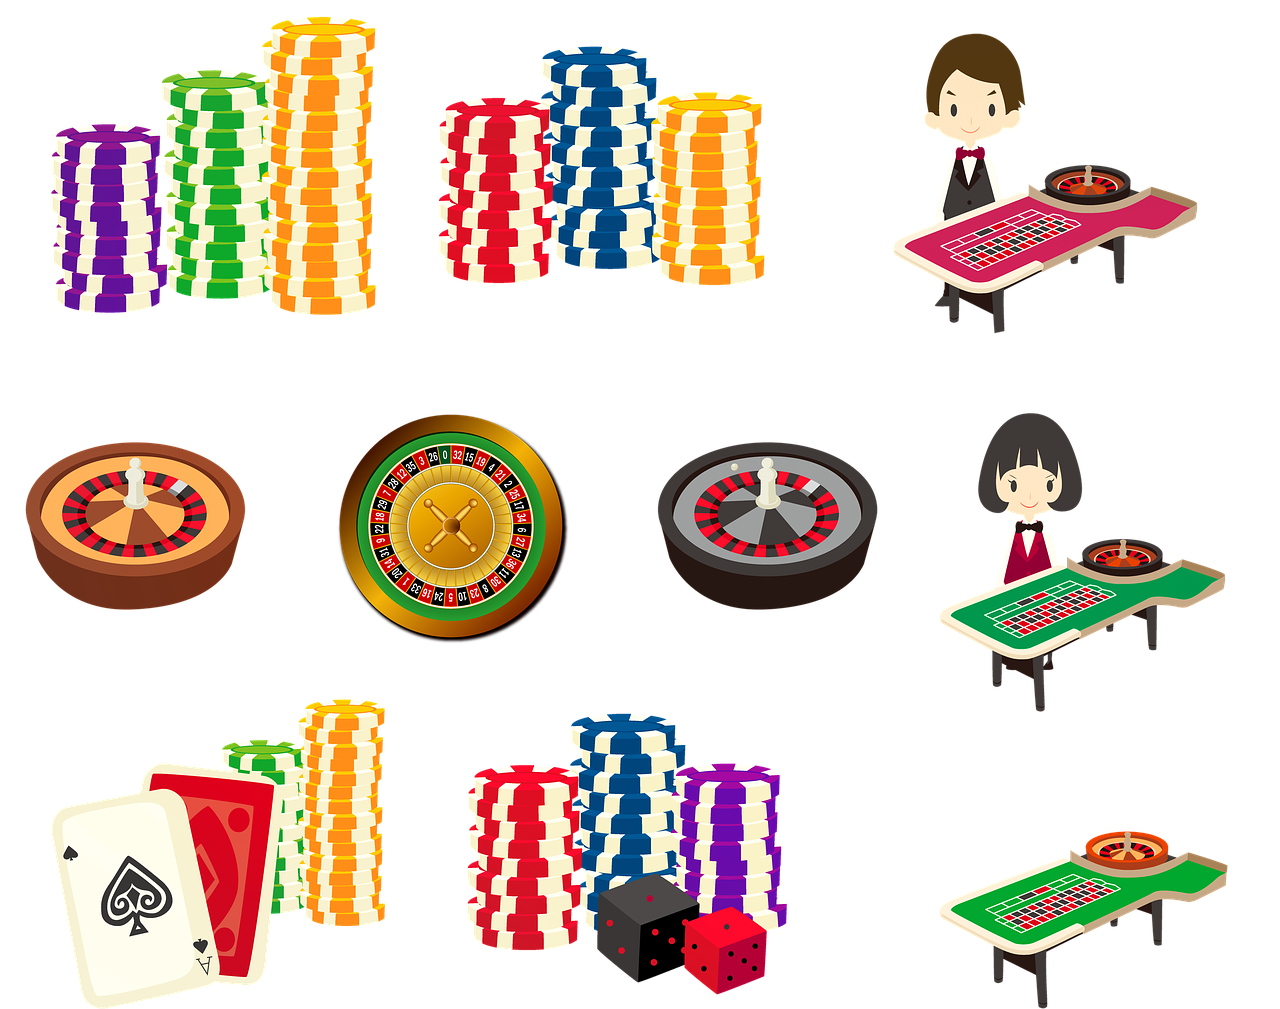 roulette-3832550_1280.png